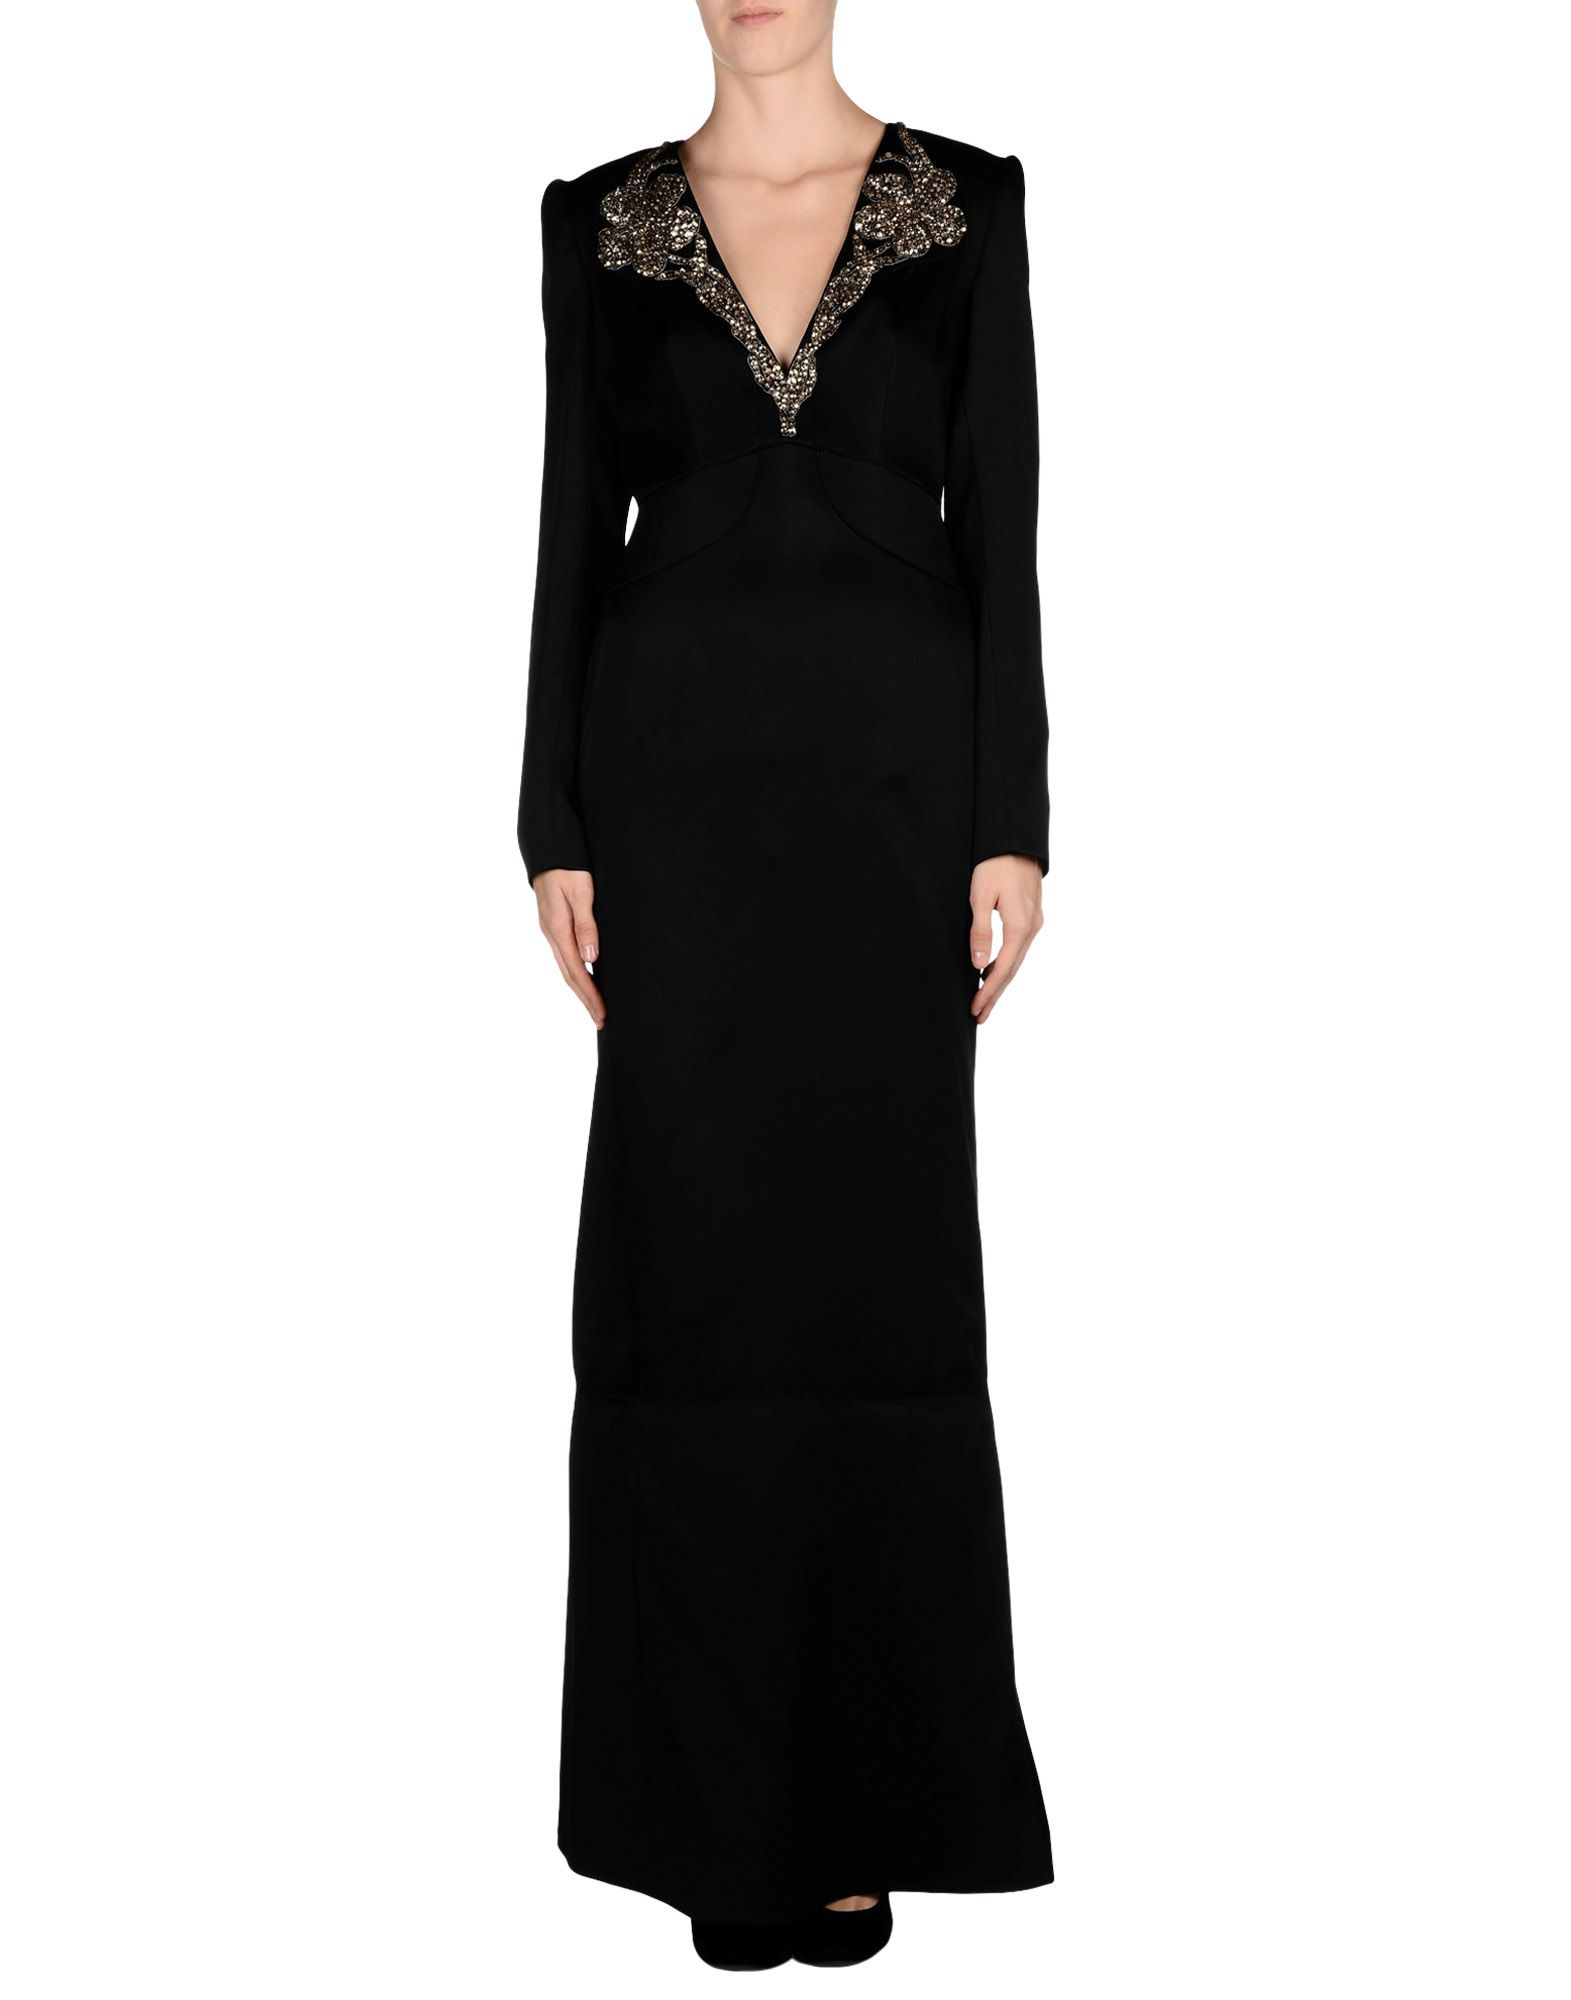 Alexander mcqueen Long Dress in Black